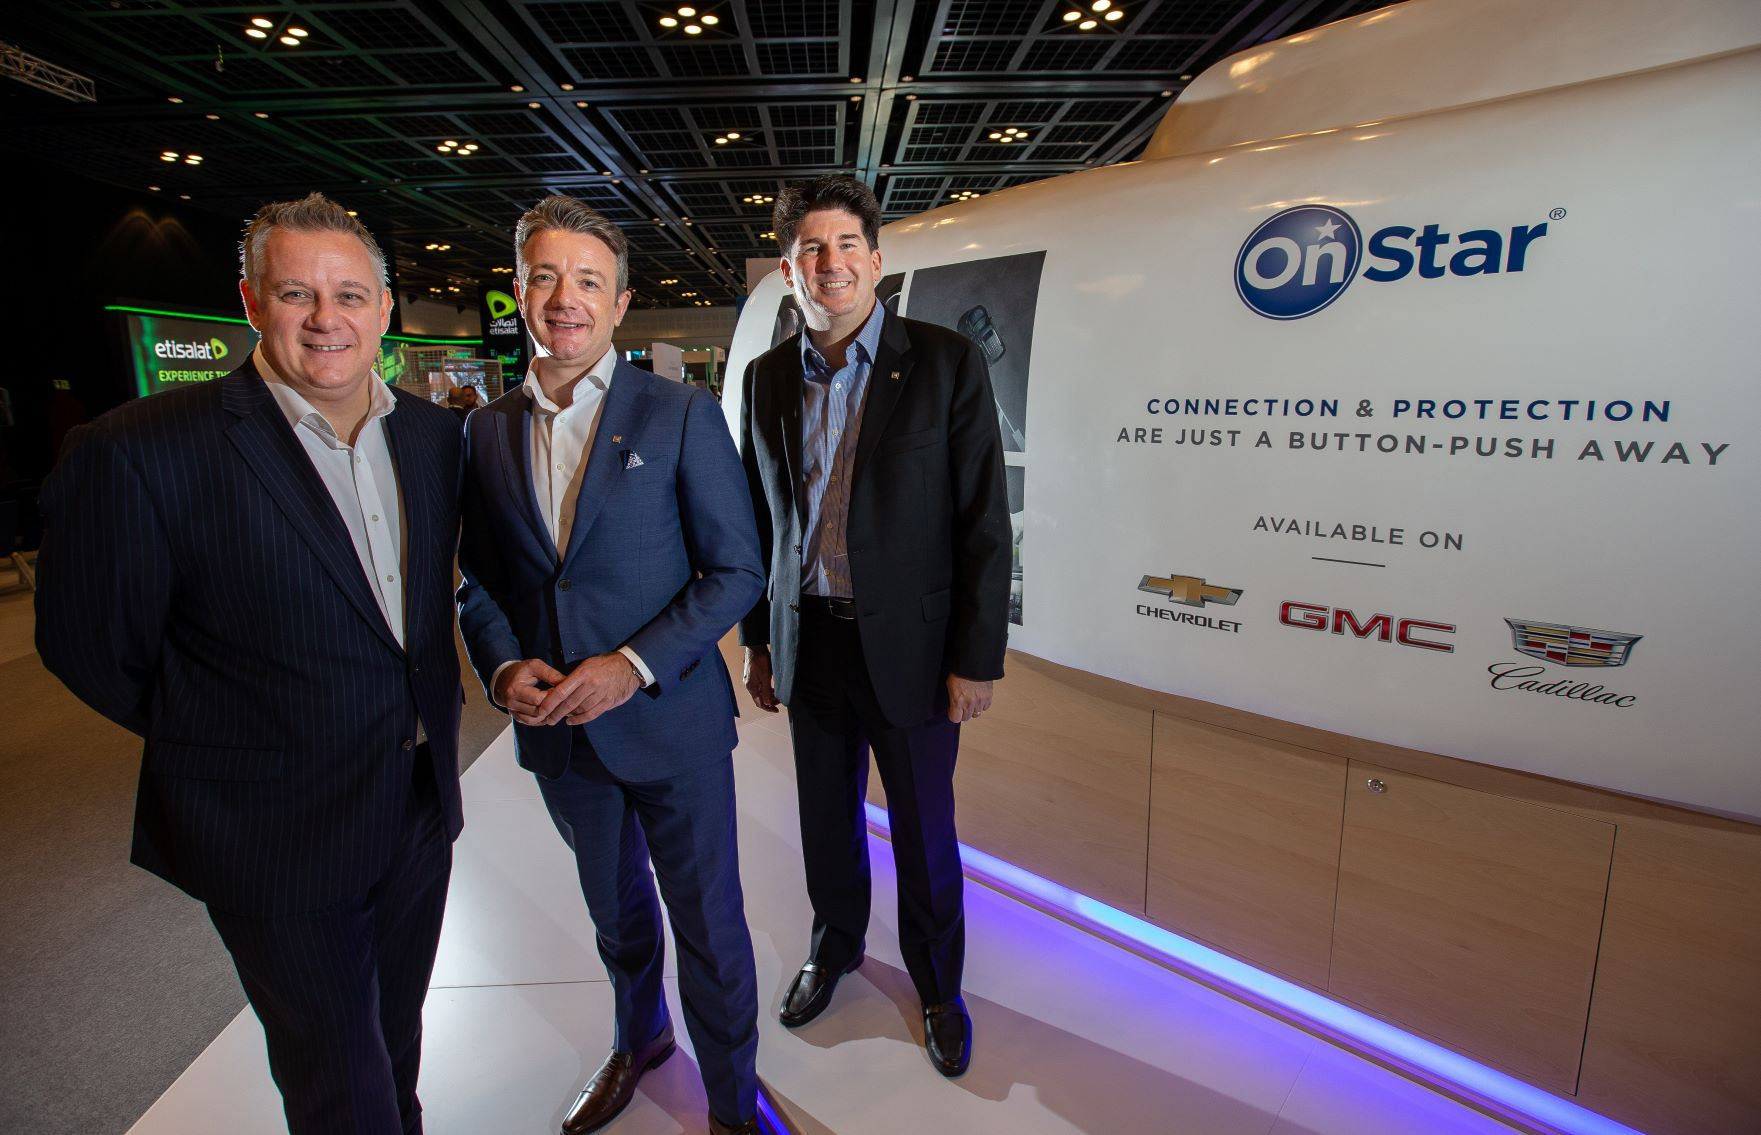 OnStar from General Motors to Arrive in the Middle East in 2020